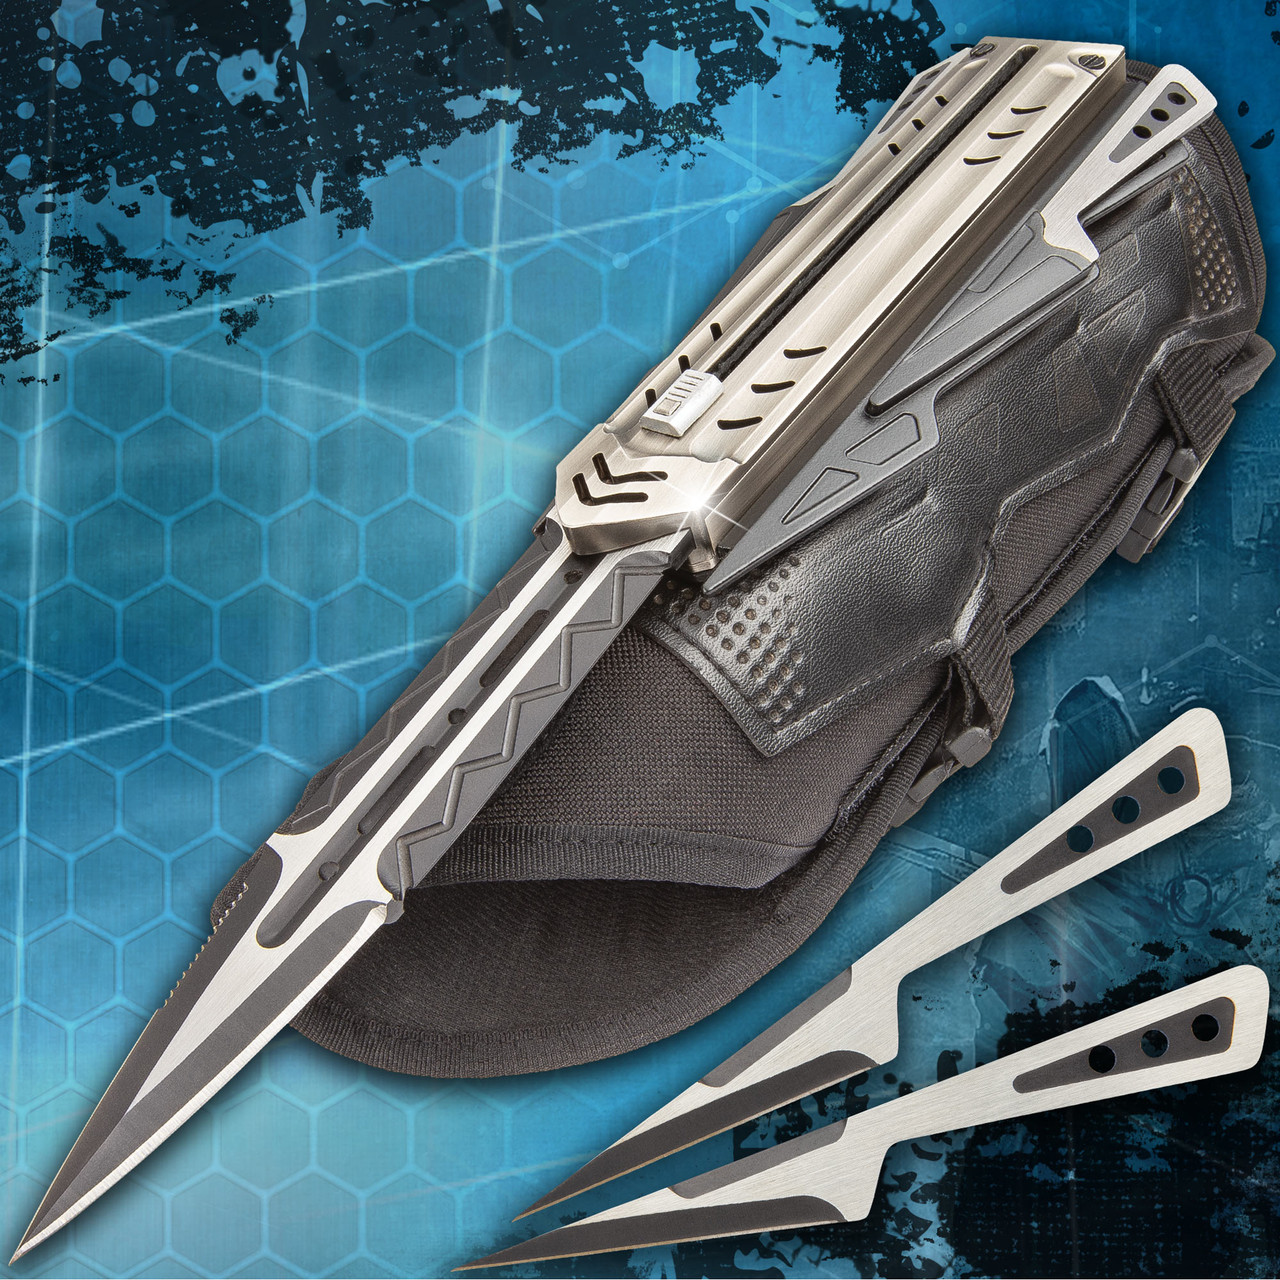 The Enforcer Tactical Gauntlet And Throwing Knives